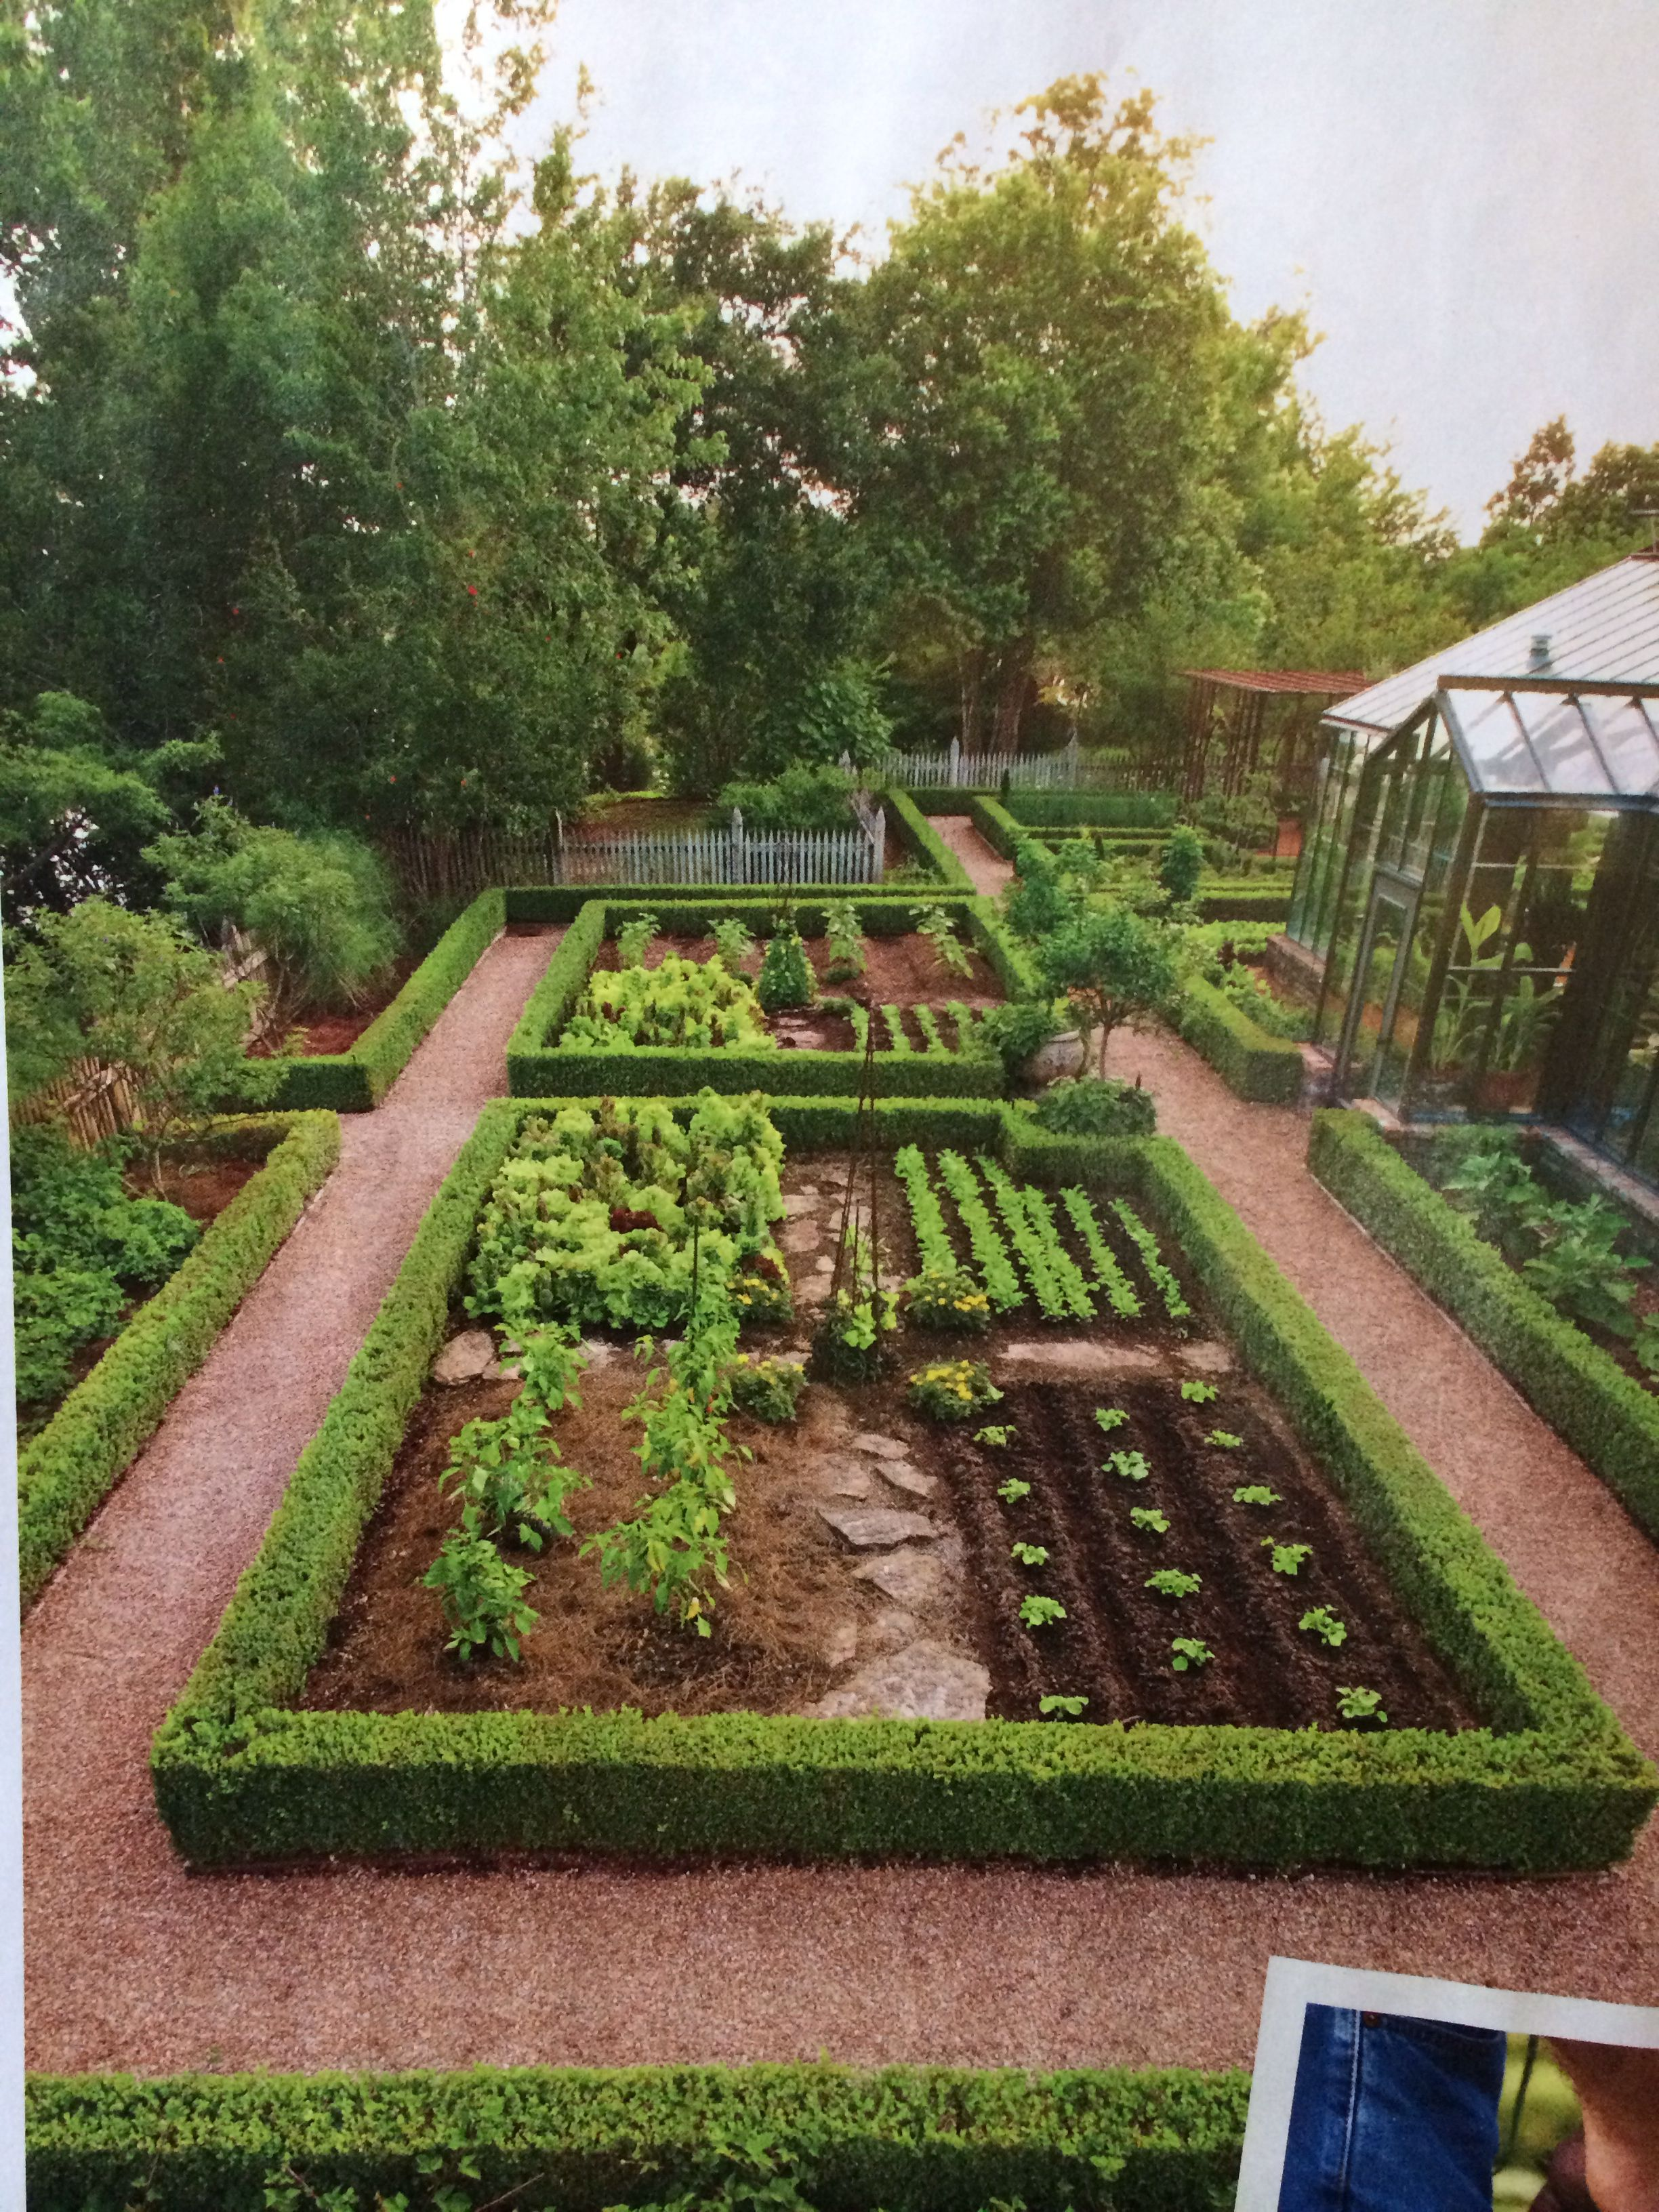 VEGETABLE GARDEN 1/4 Acre Garden Divided Into Series Of